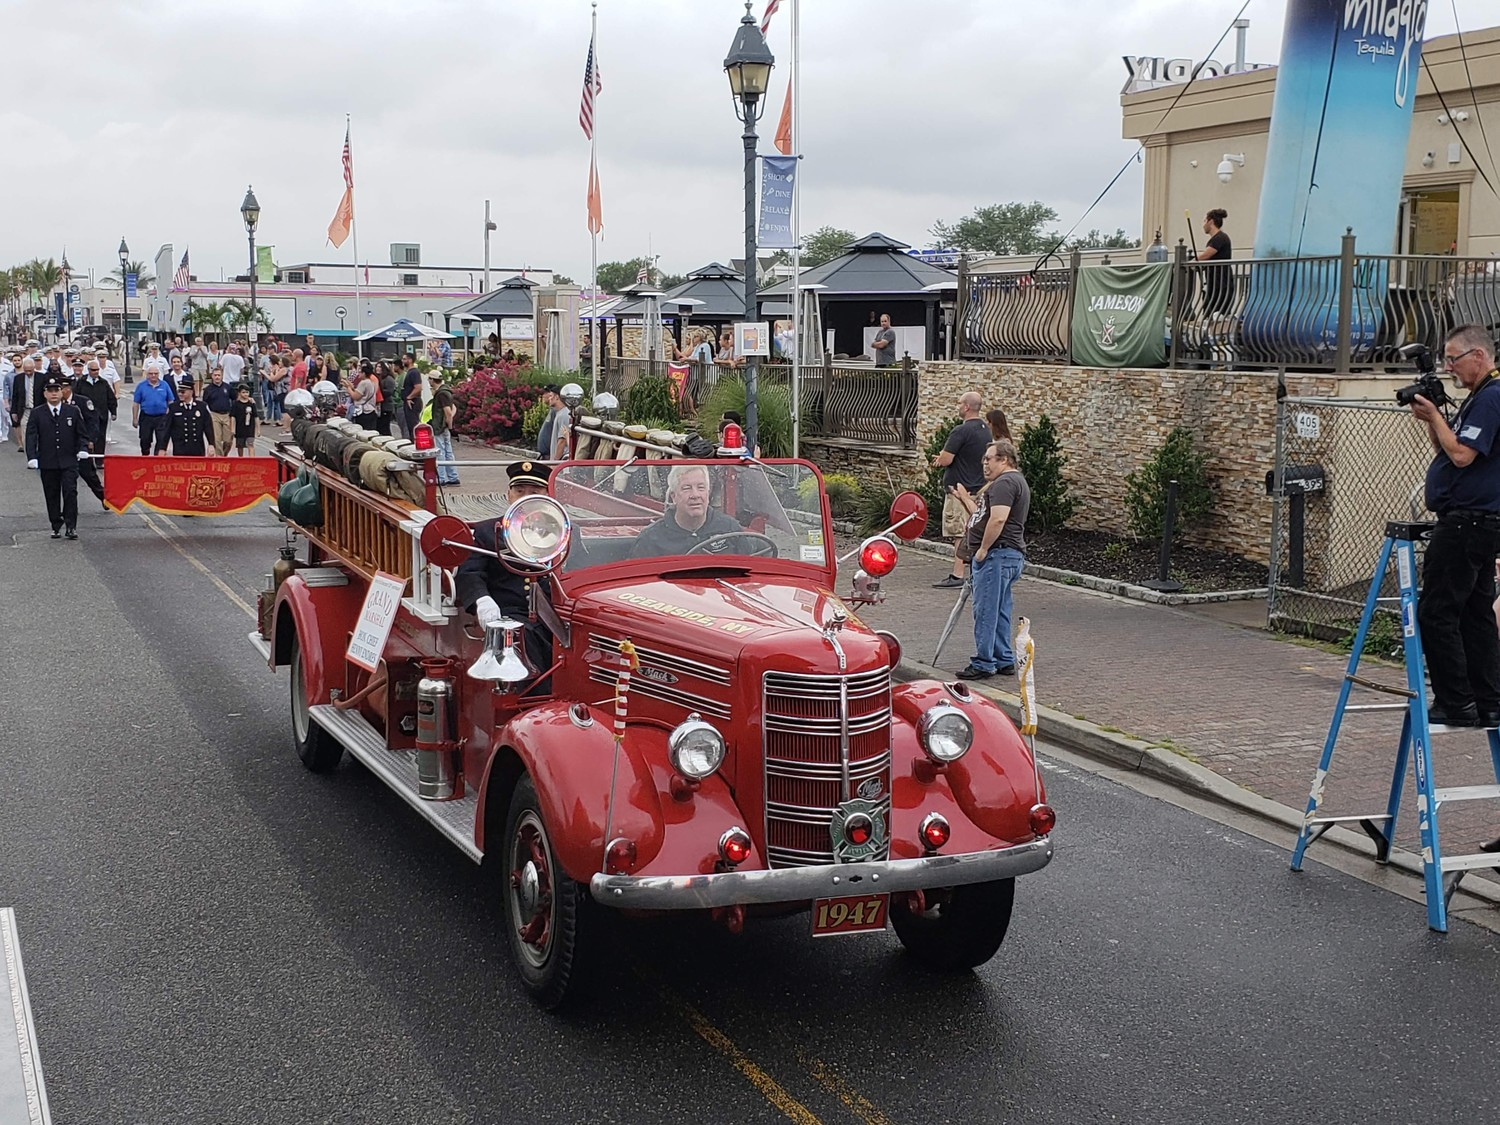 Participating in and supporting Freeport's celebration, the Oceanside Fire Department cruised down Woodcleft Avenue with the parade's grand marshal, Chief Henny Enders, in an antique fire truck.